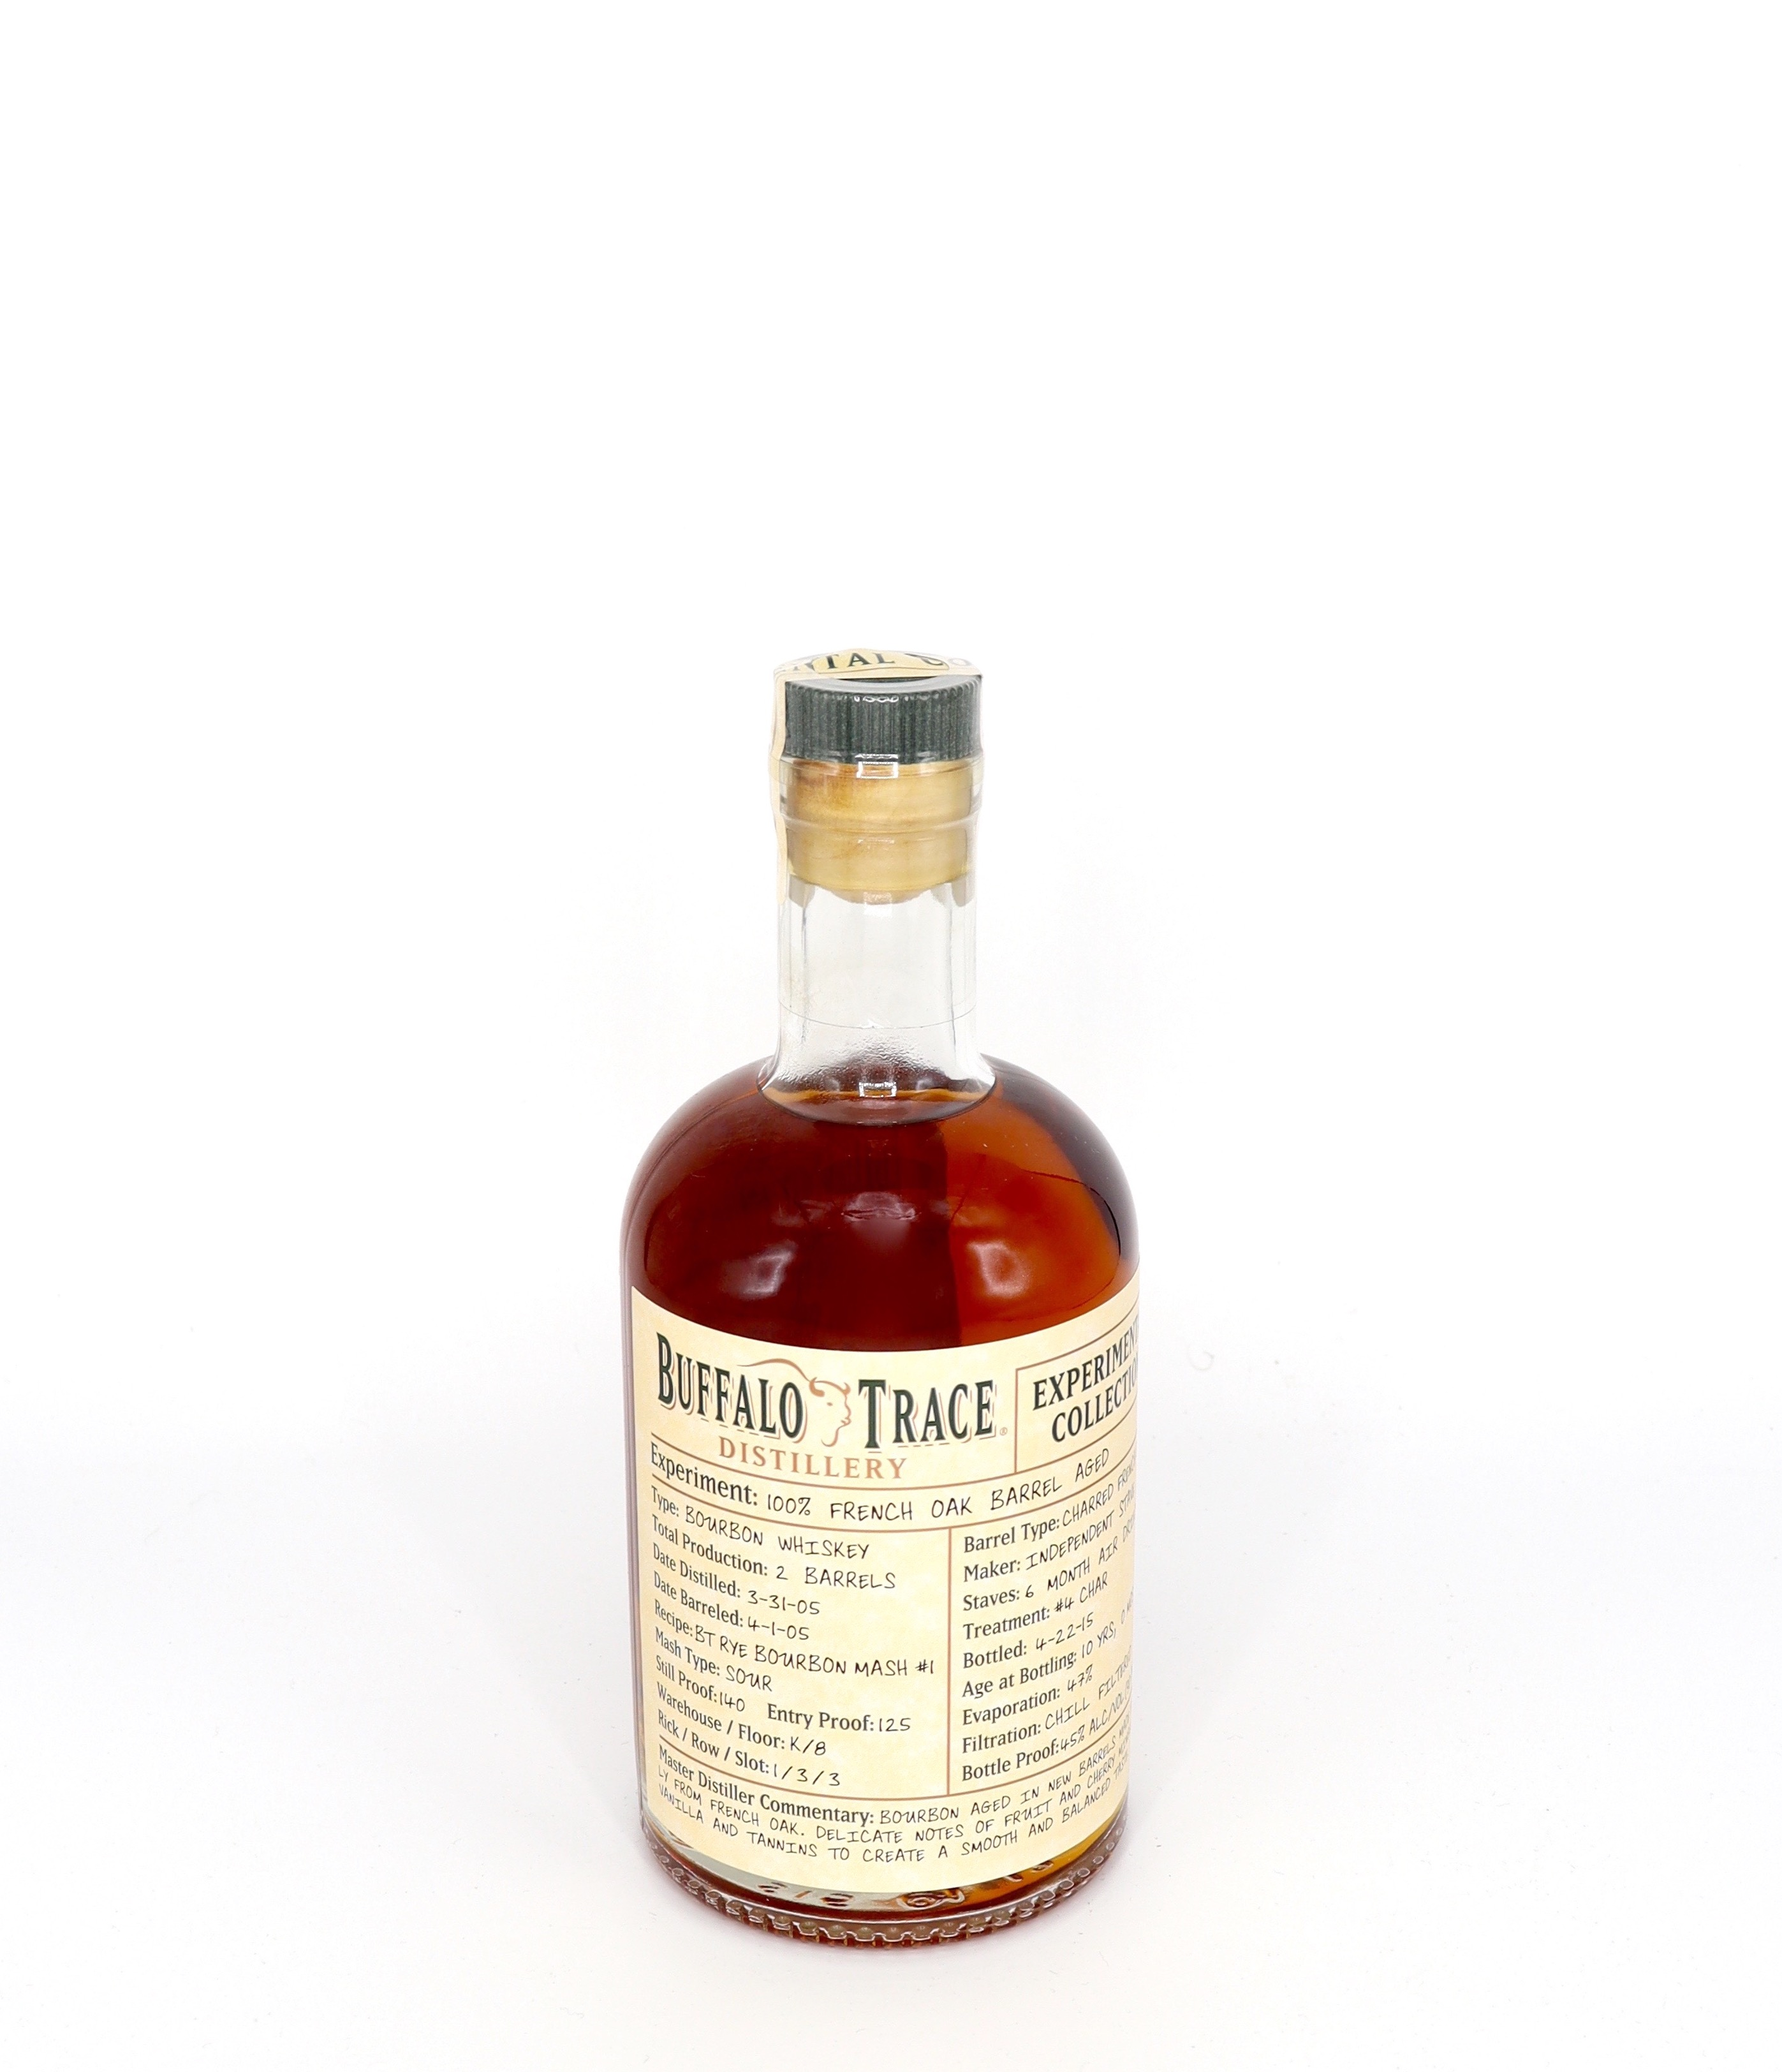 Buffalo Trace Experimental Collection 100 percent French Oak Aged